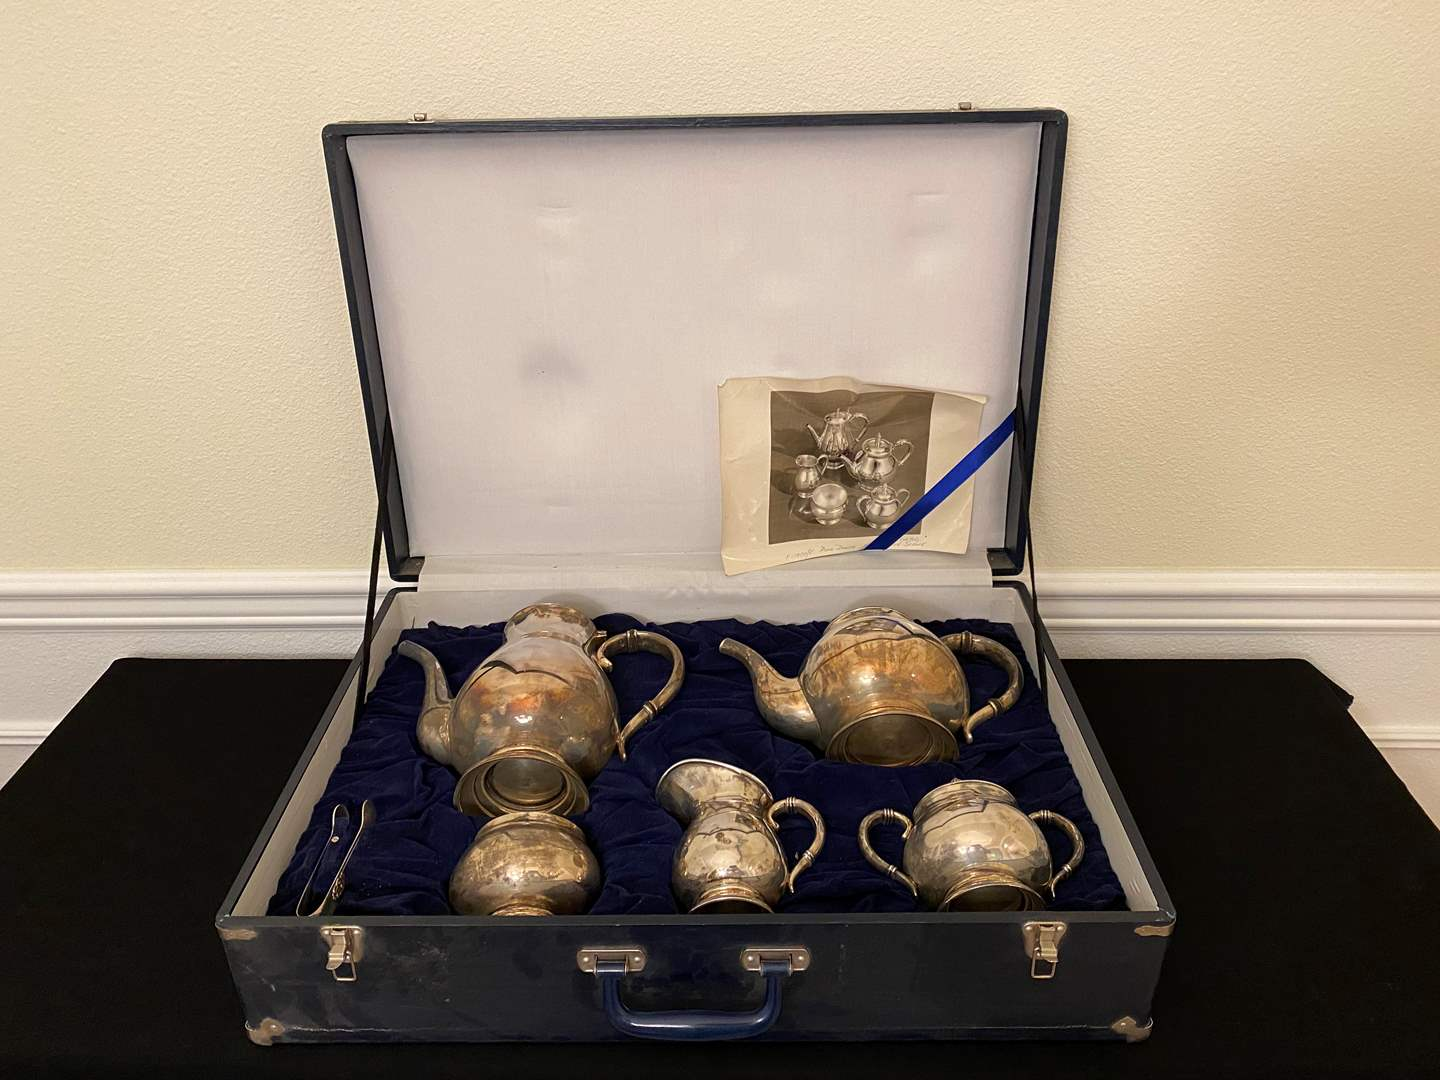 """Lot # 4 - Awesome 6-Piece """"Royal Danish"""" Sterling Silver Coffee/Tea Serving Set w/Original  Carrying Case - Total 2,825 Grams (main image)"""